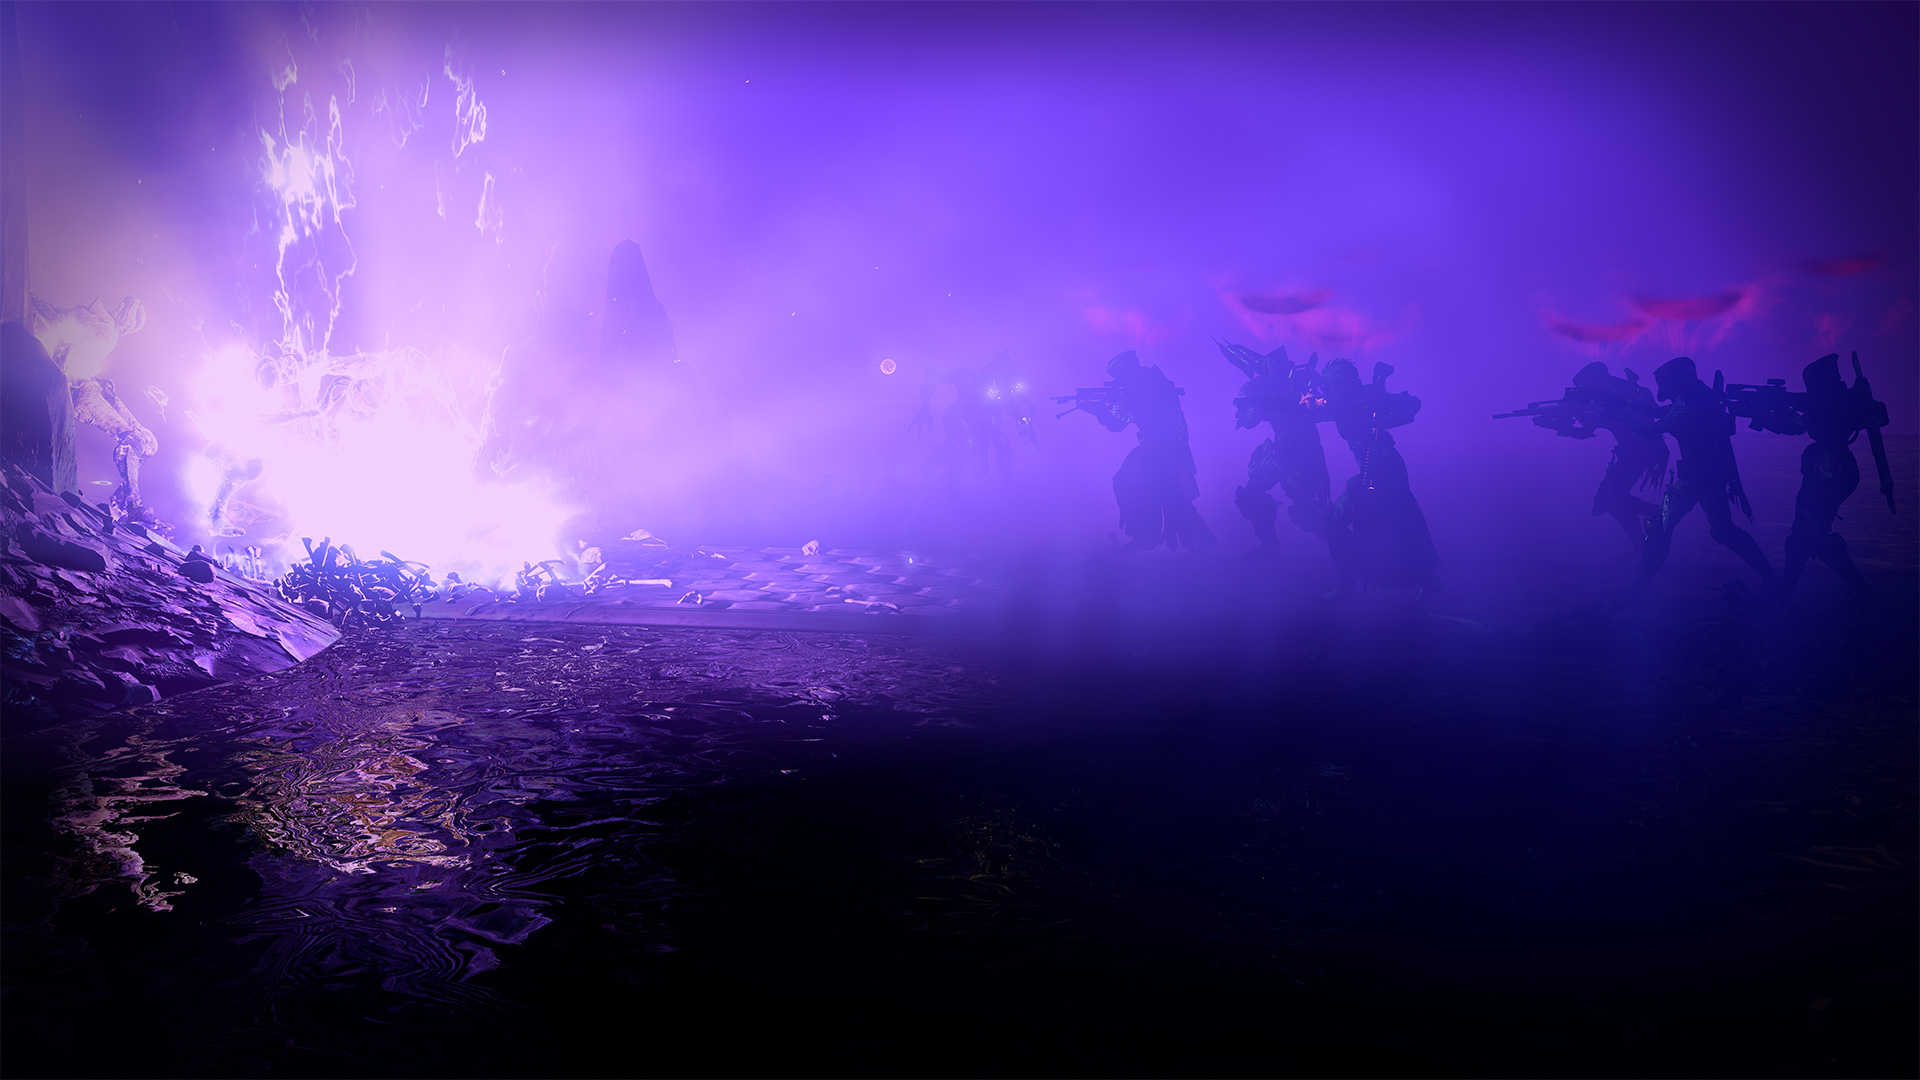 Destiny's first expansion looks to bring major changes to loot drops, gear, raids and more